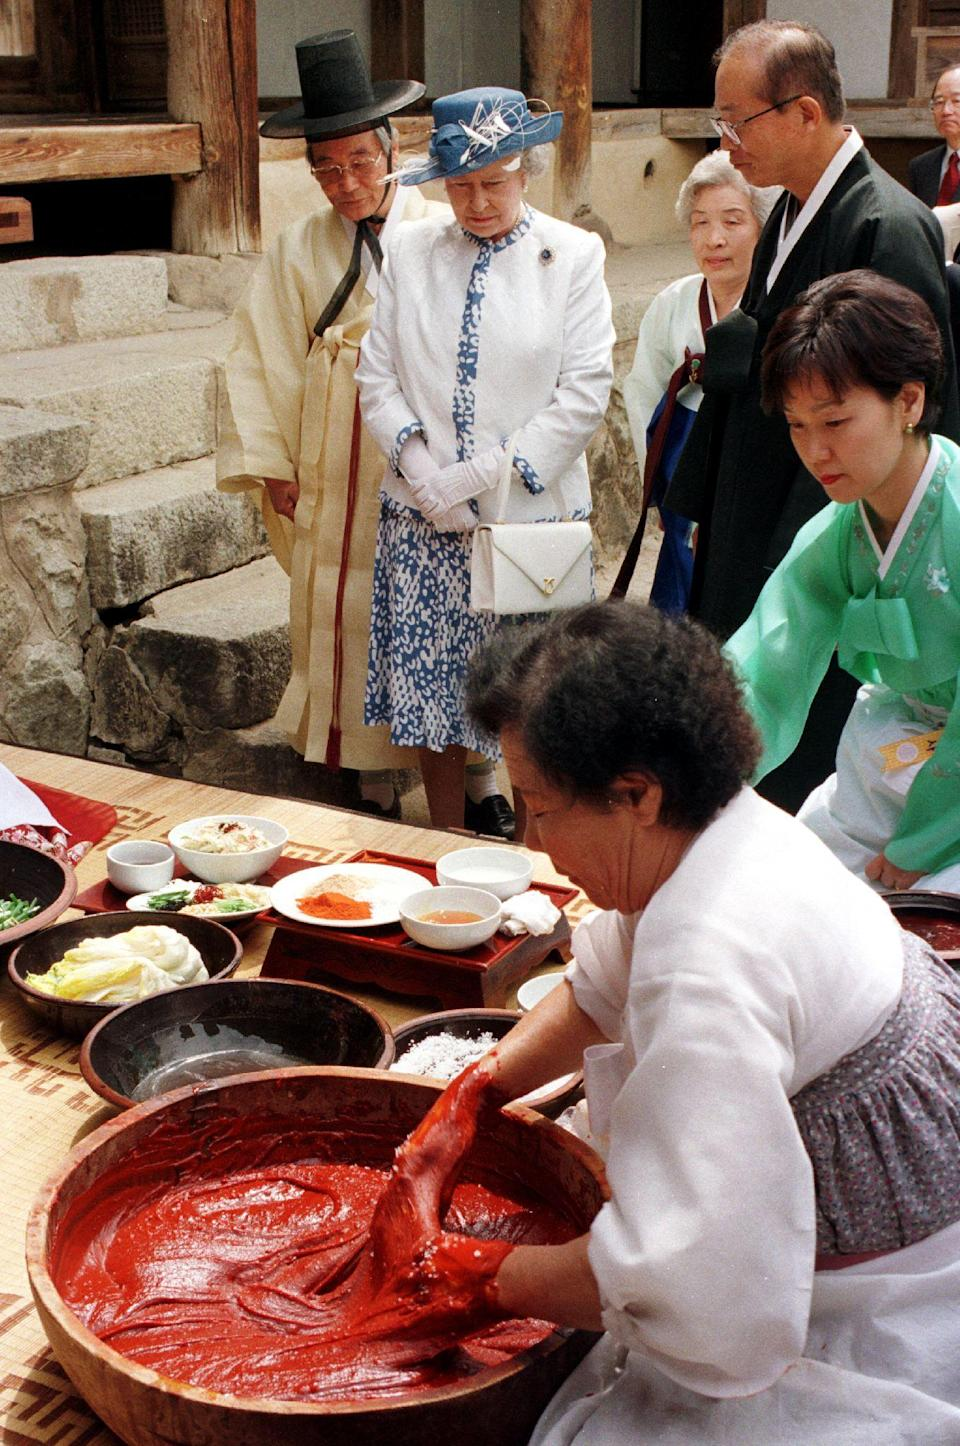 Britain's Queen Elizabeth II (C, top) watches women make South Korean's main side dish Kimchi as she visits a 400-year-old traditional house in the village of Hahoe, Andong province, 268 kilometers southeast of Seoul, 21 April 1999. South Korean aristocrat Ryu Yong-Ha, (R, top) the village chief, who is resisting changes to the country's millenia-old culture, didn not allow the Queen into his main living room which is strictly reserved for men. He disapproved of his relatives' plan to break with tradition and offer the monarch a birthday feast which he views as a demeaning publicity stunt.  AFP PHOTO/CHOO YOUN-KONG (Photo credit should read CHOO YOUN-KONG/AFP via Getty Images)